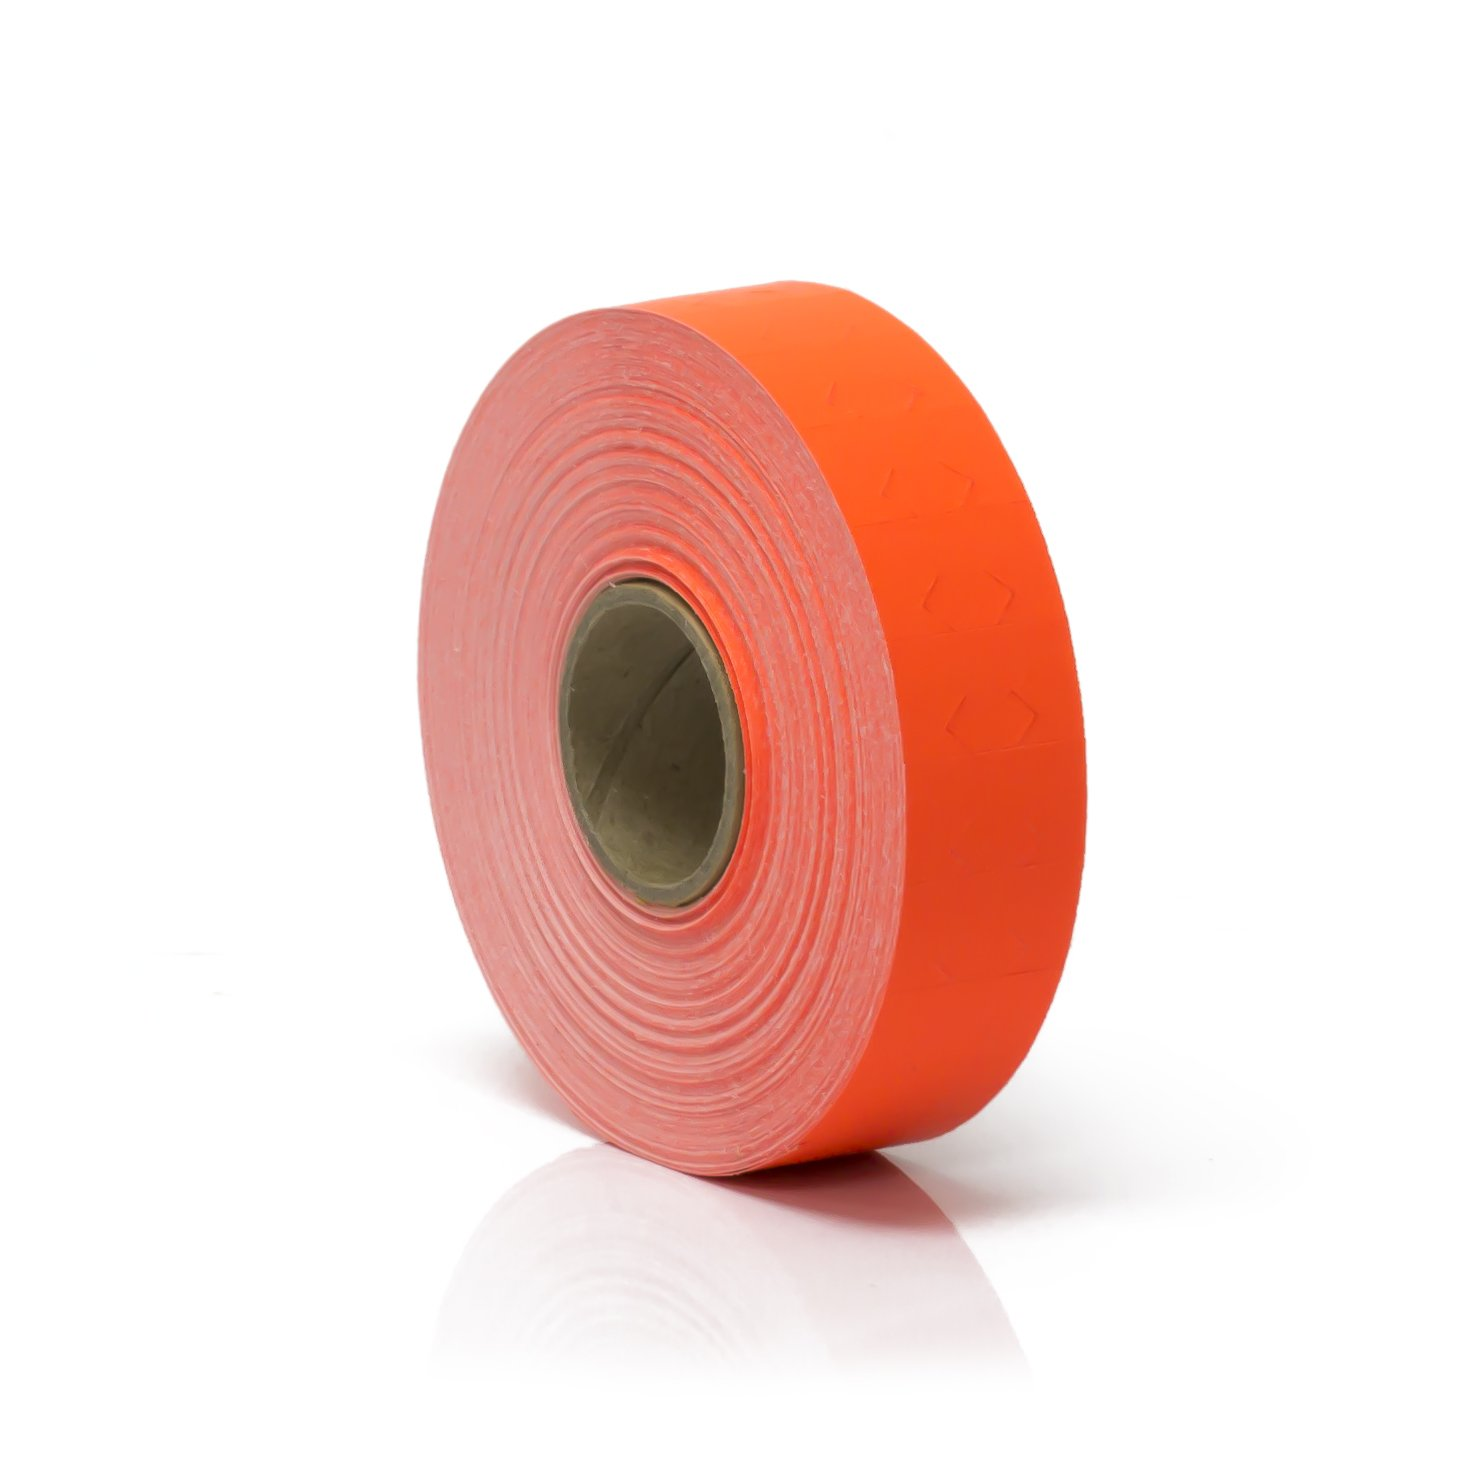 Monarch 1131 Compatible Labels - Fluorescent Red - 20,000 Labels - Pack with 8 rolls - Labels for Us by Labels for Us (Image #3)